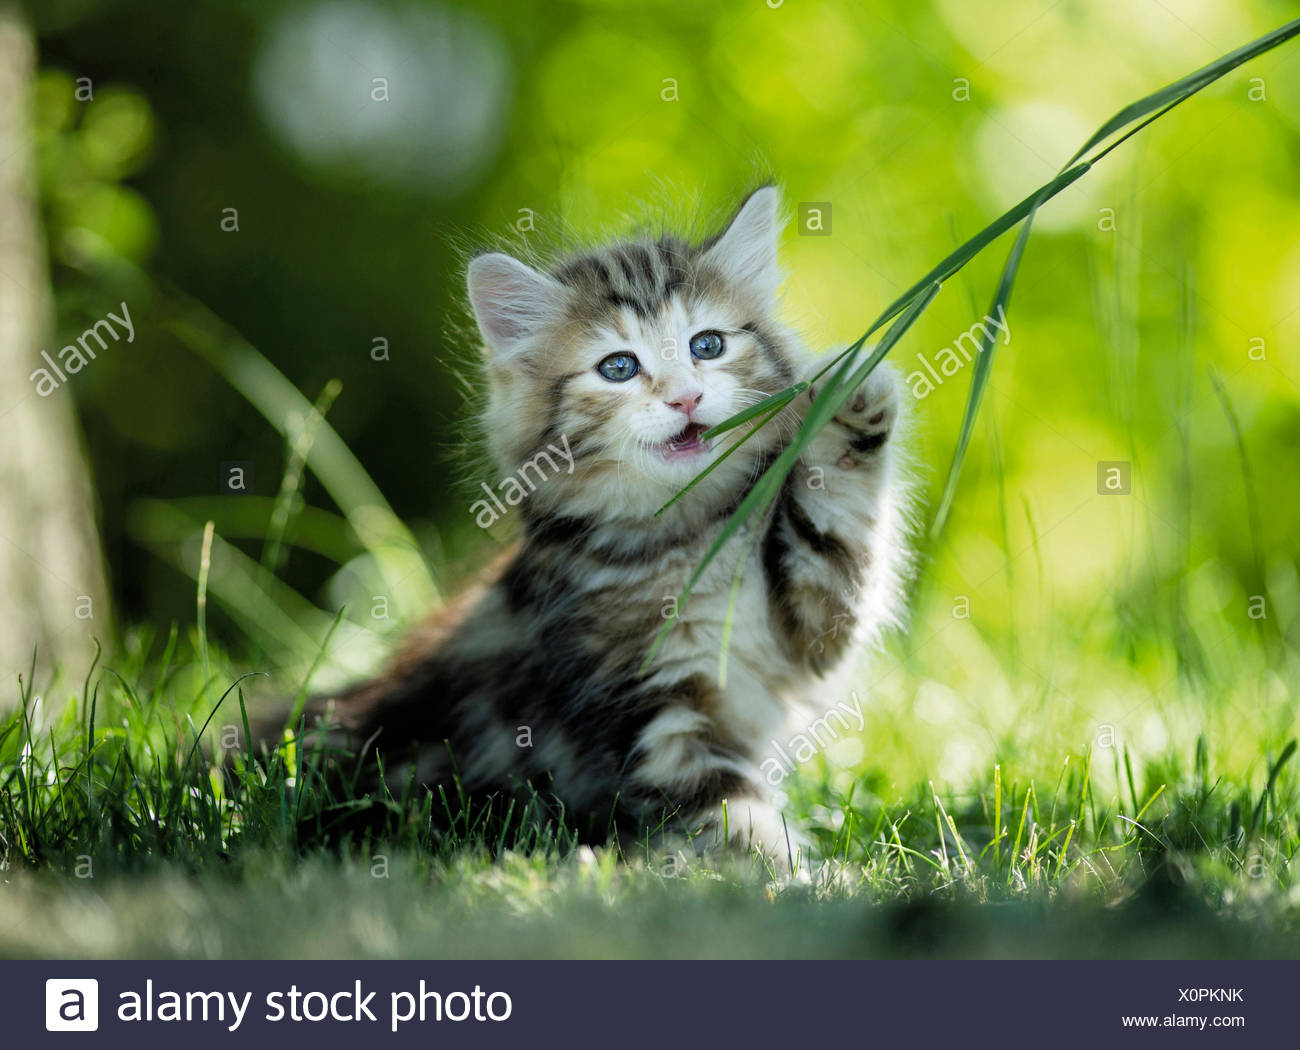 Norwegian Forest Cat Tabby kitten chewing blade of grass Germany - Stock Image